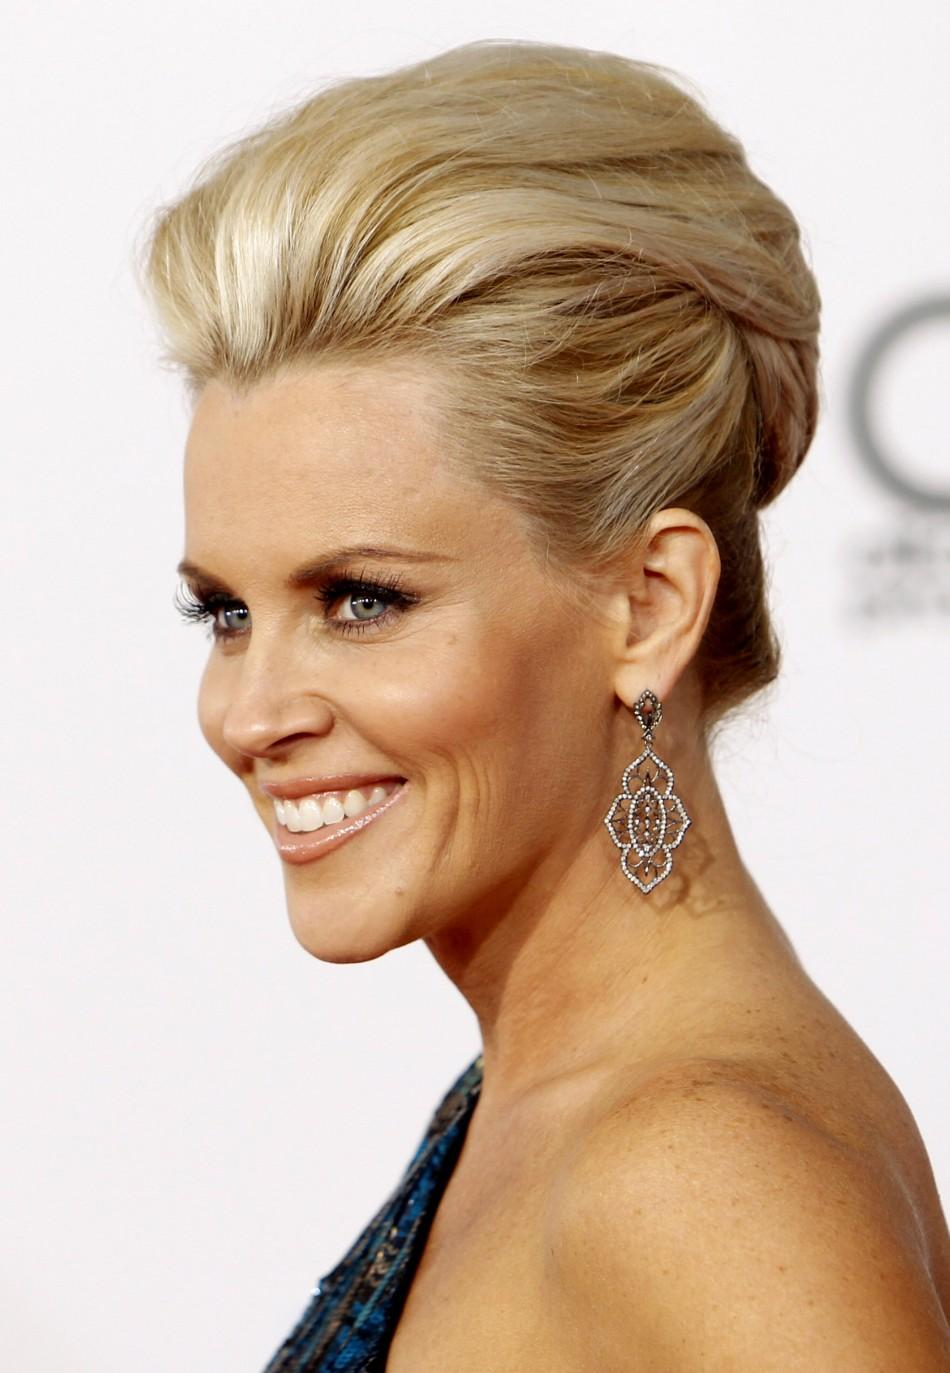 Jenny McCarthy, the former Playboy model reveals her big bump